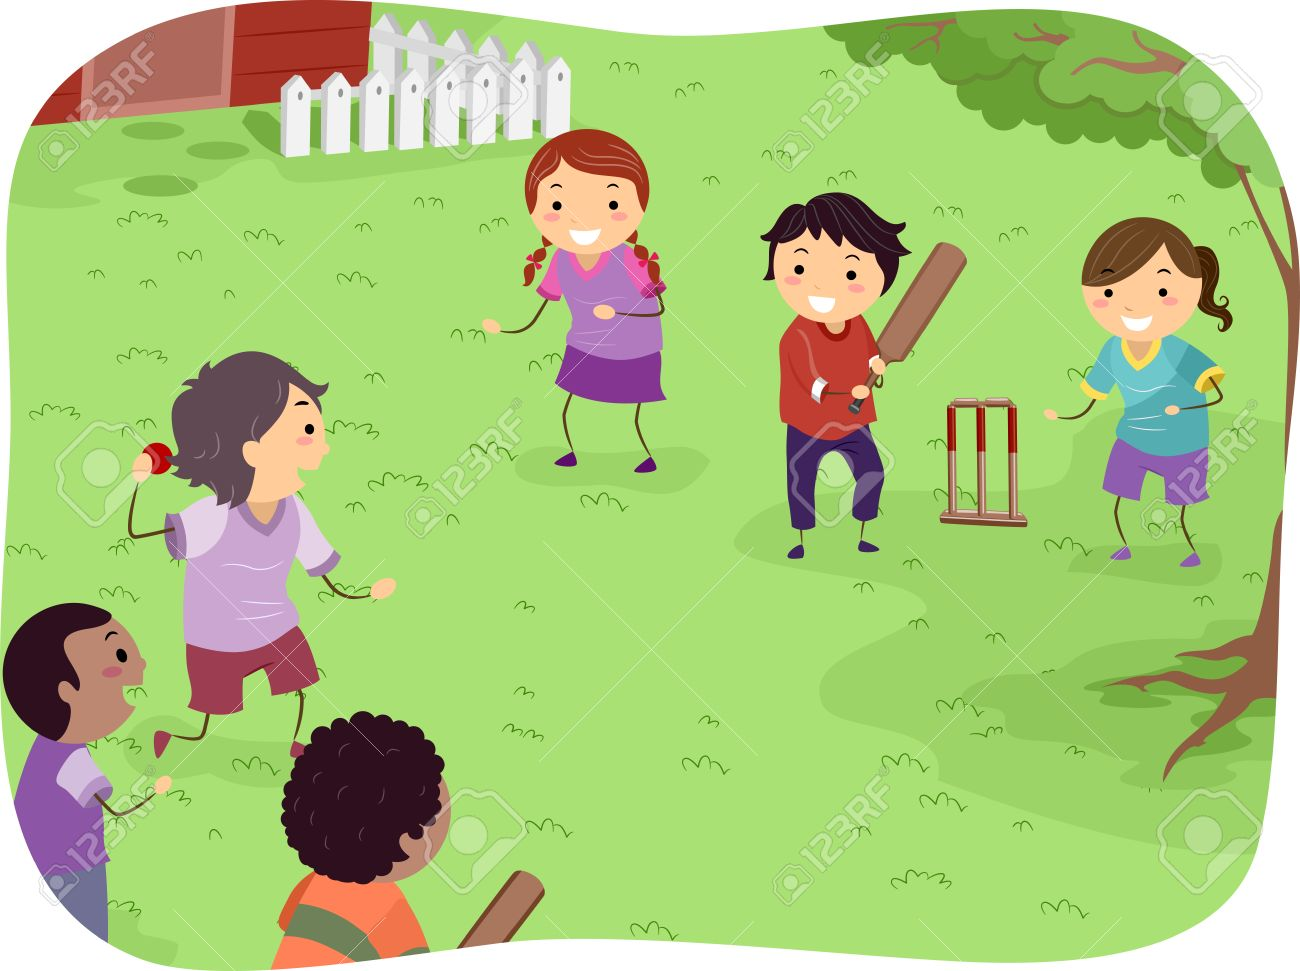 Illustration Featuring Kids Playing Cricket Royalty Free Cliparts, Vectors,  And Stock Illustration. Image 31678306.